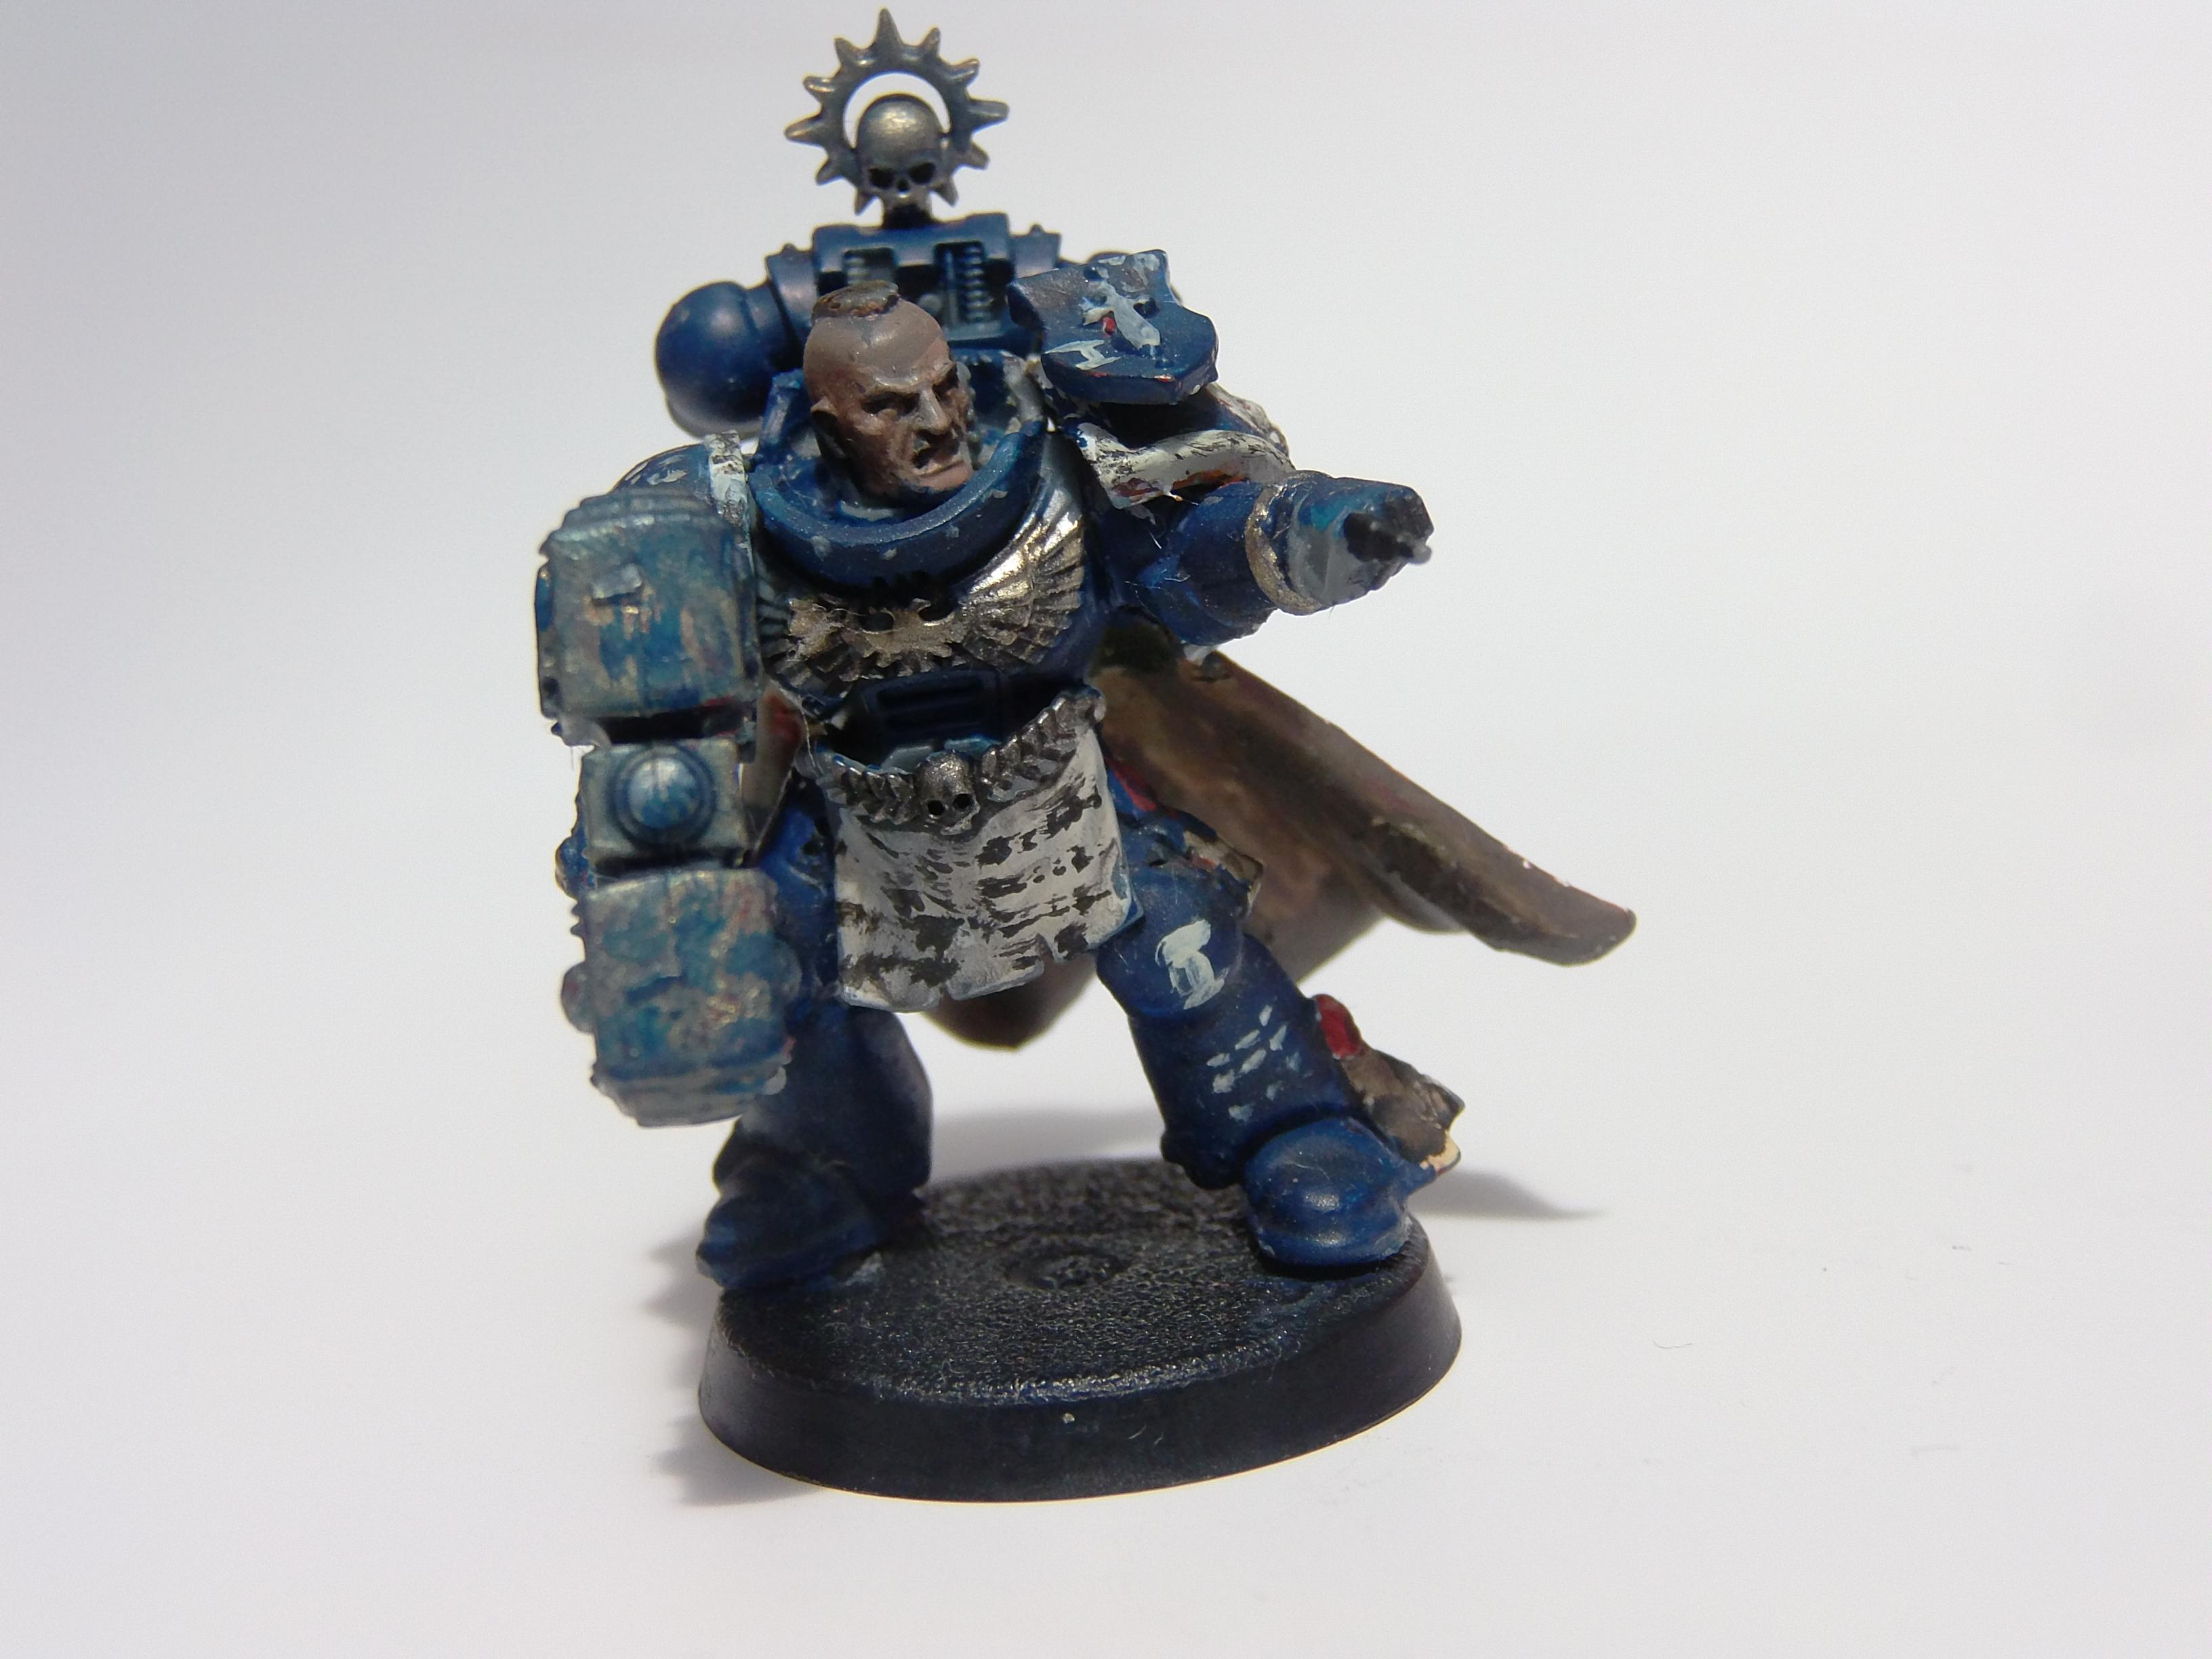 Conversion, Kit Bashed, Scratch Build, Space Marines, Ultramarines, Warhammer 40,000